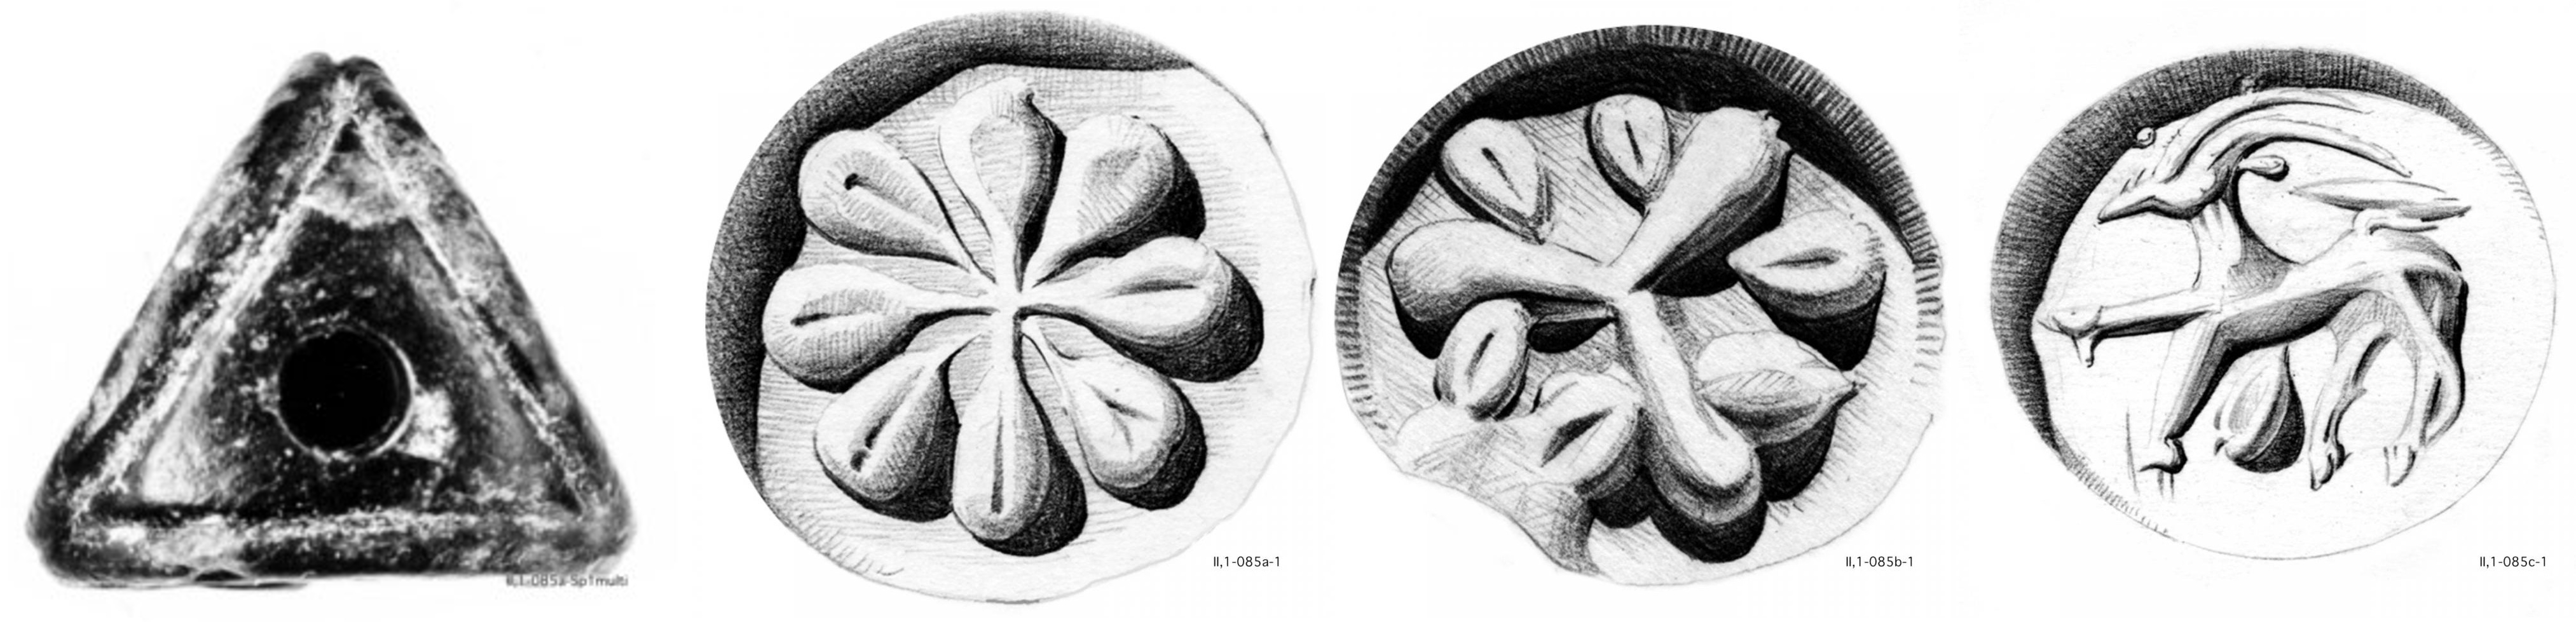 Fig. 1: The three-sided seal CMS                         II,1 085. [Graphic by courtesy of the CMS Heidelberg.]